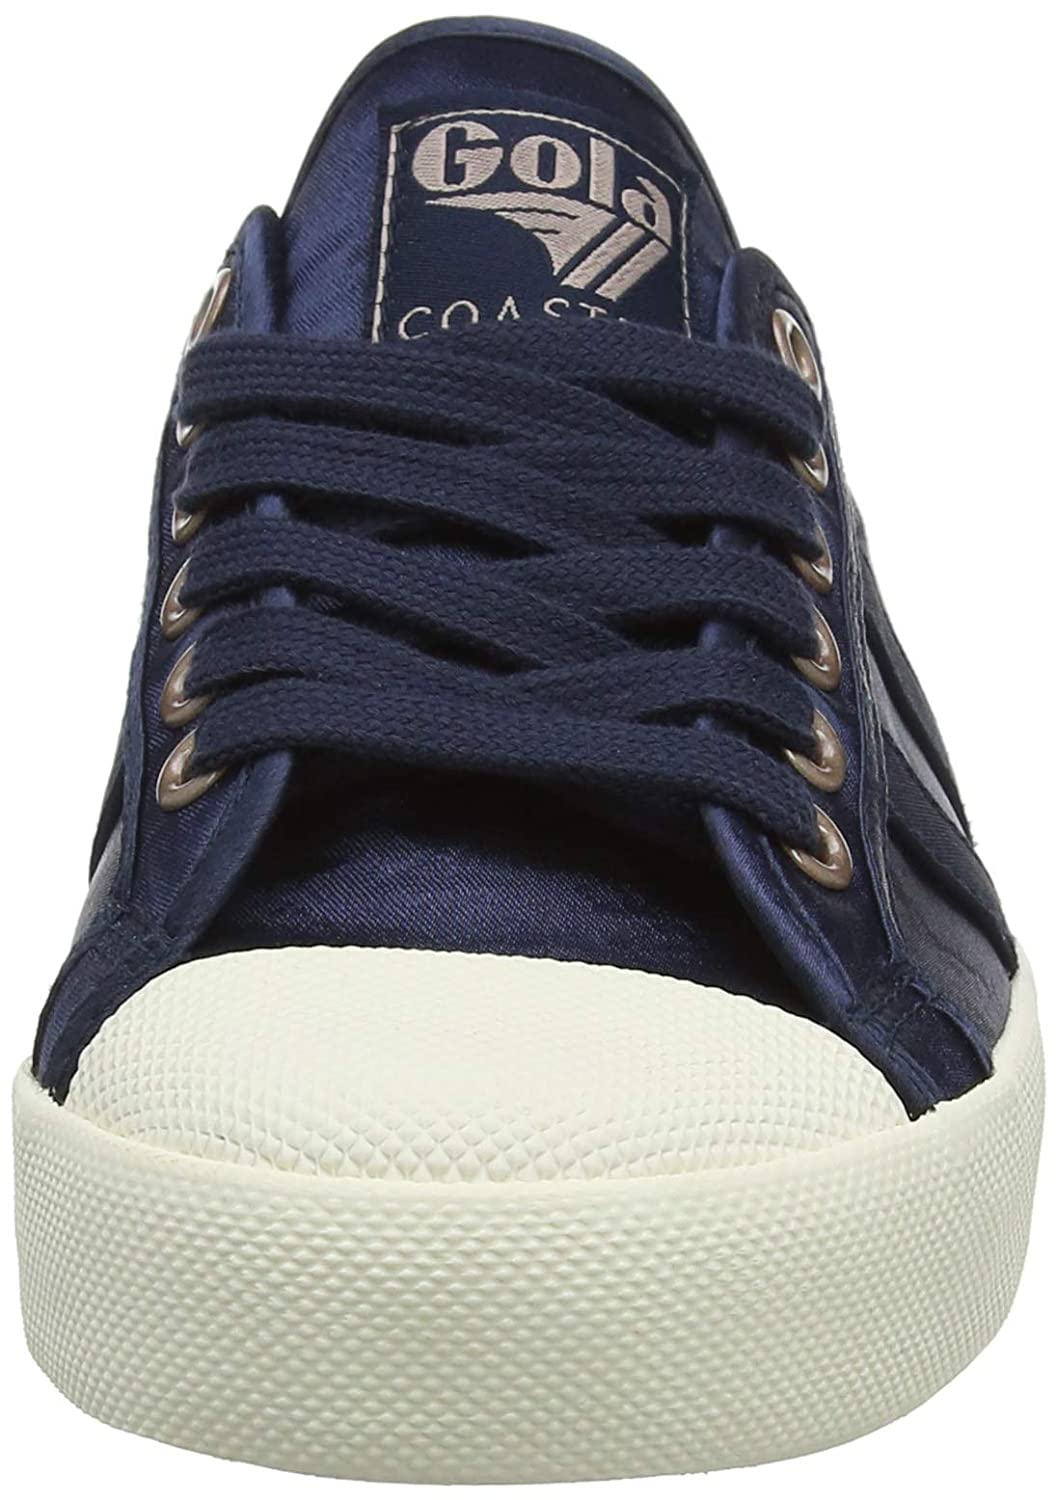 Gola Women/'s Coaster Satin Trainers